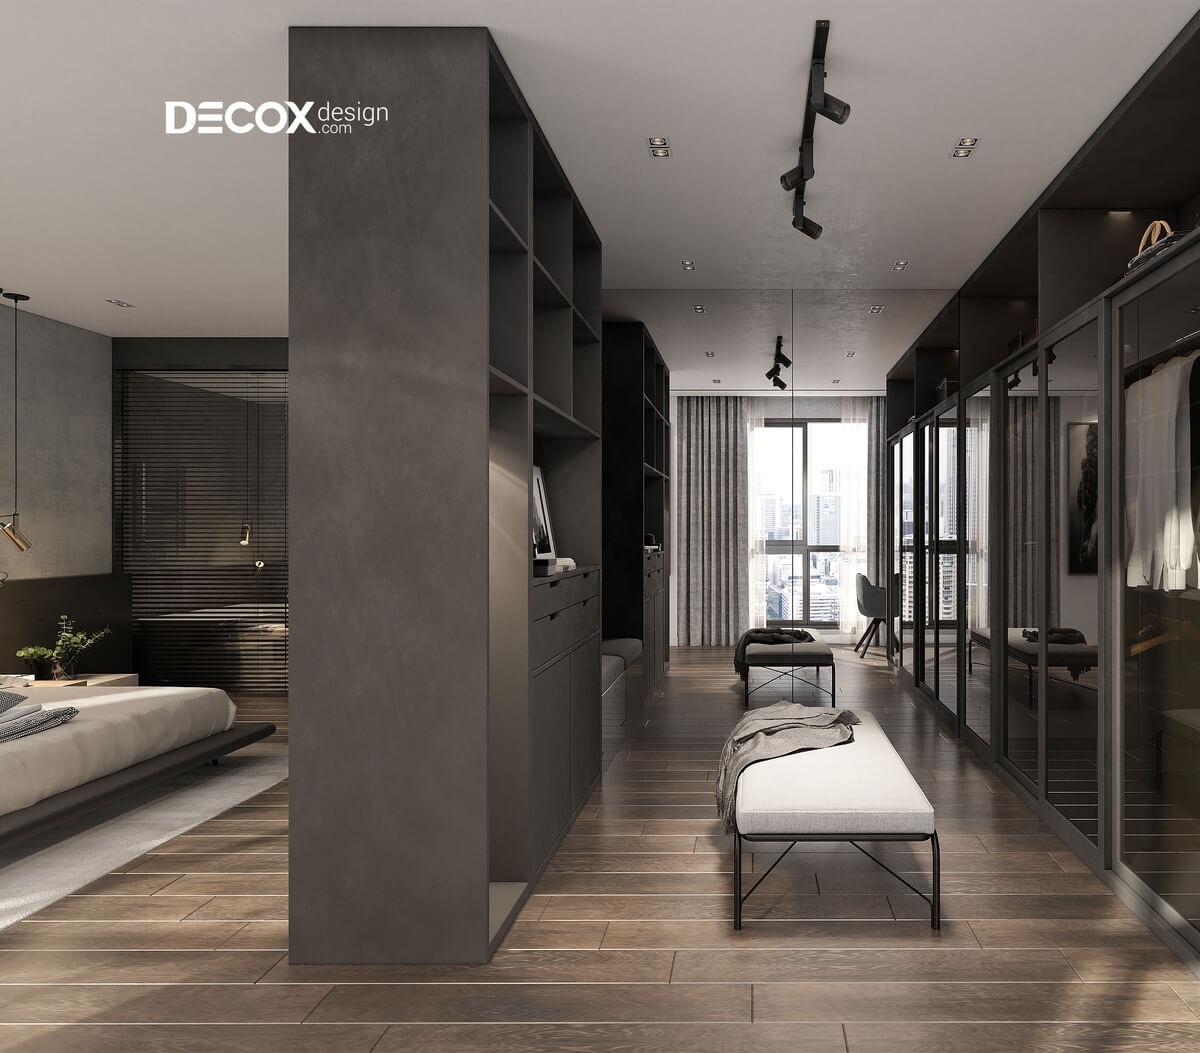 thiet-ke-noi-that-estella-height-137m2-14-phong-ngu-master-decox-design